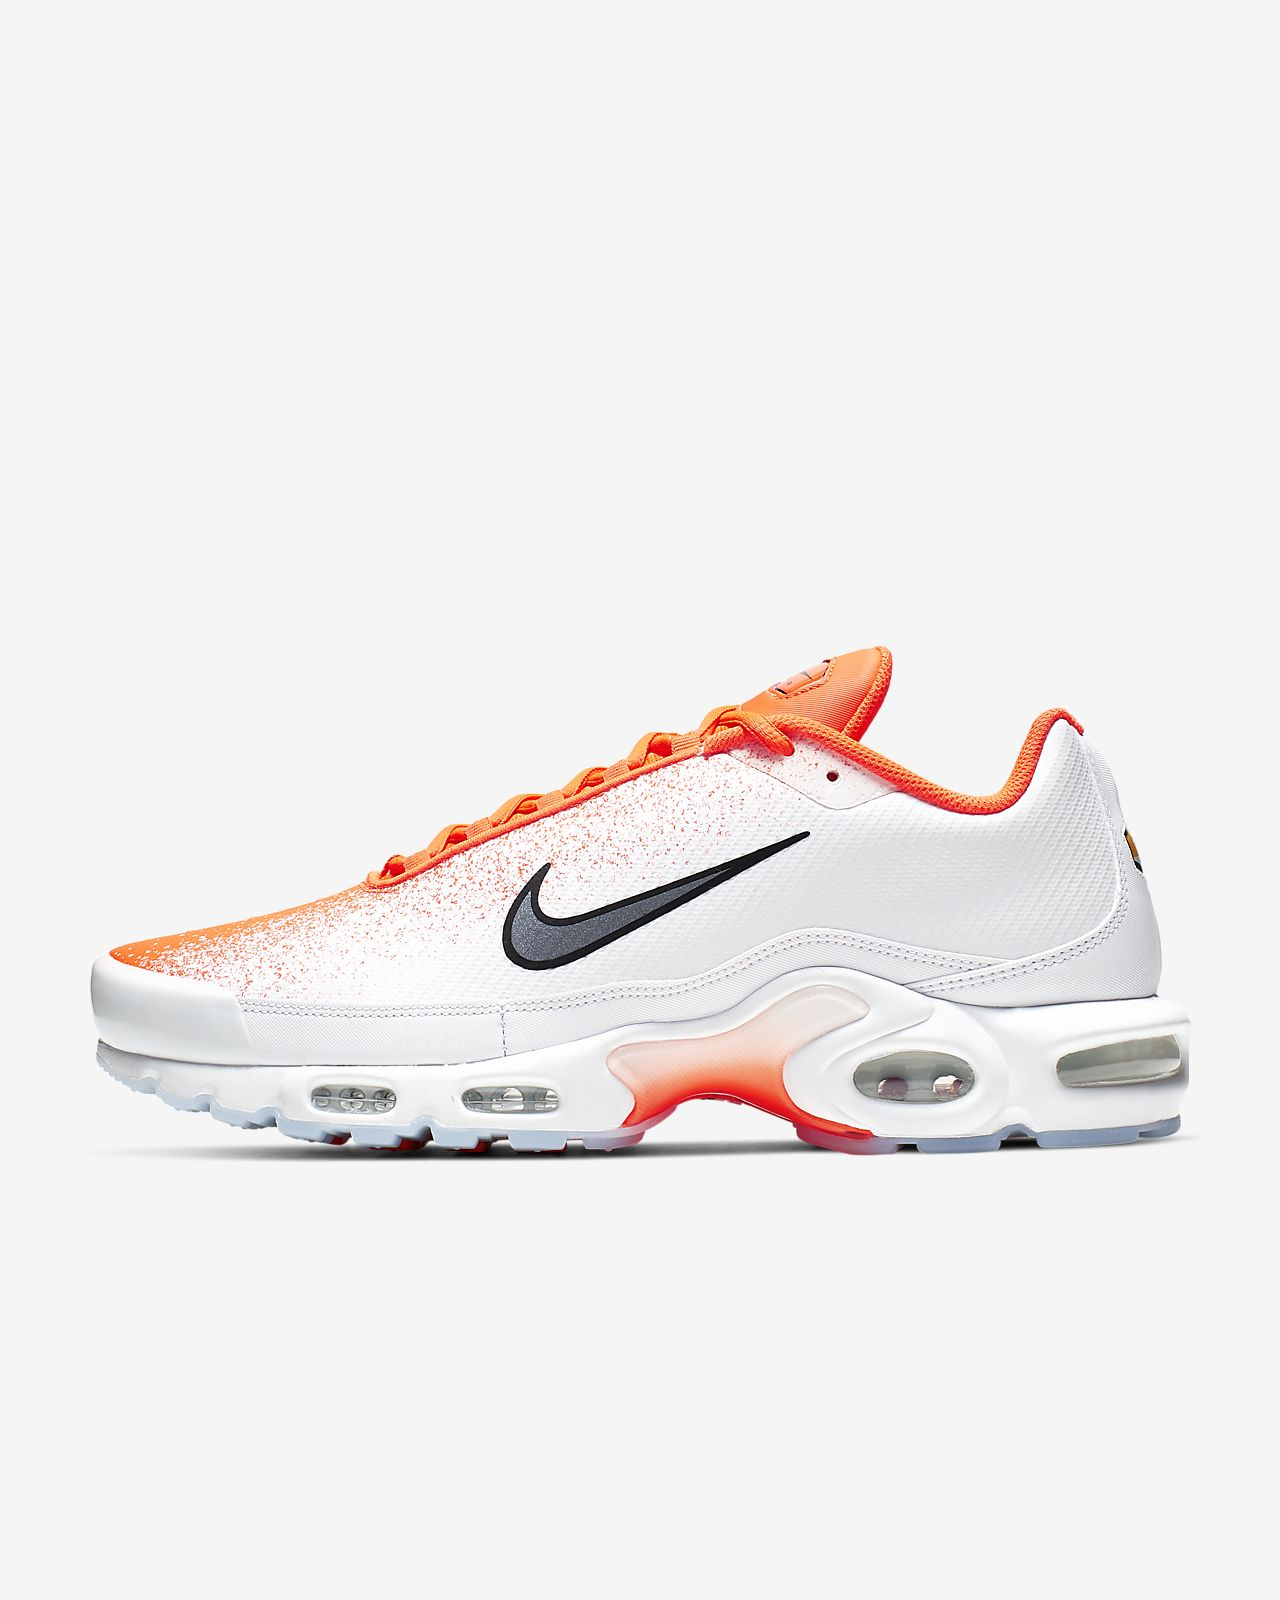 detailed pictures bd48a 46228 Nike Air Max Plus Tn SE Men's Shoe